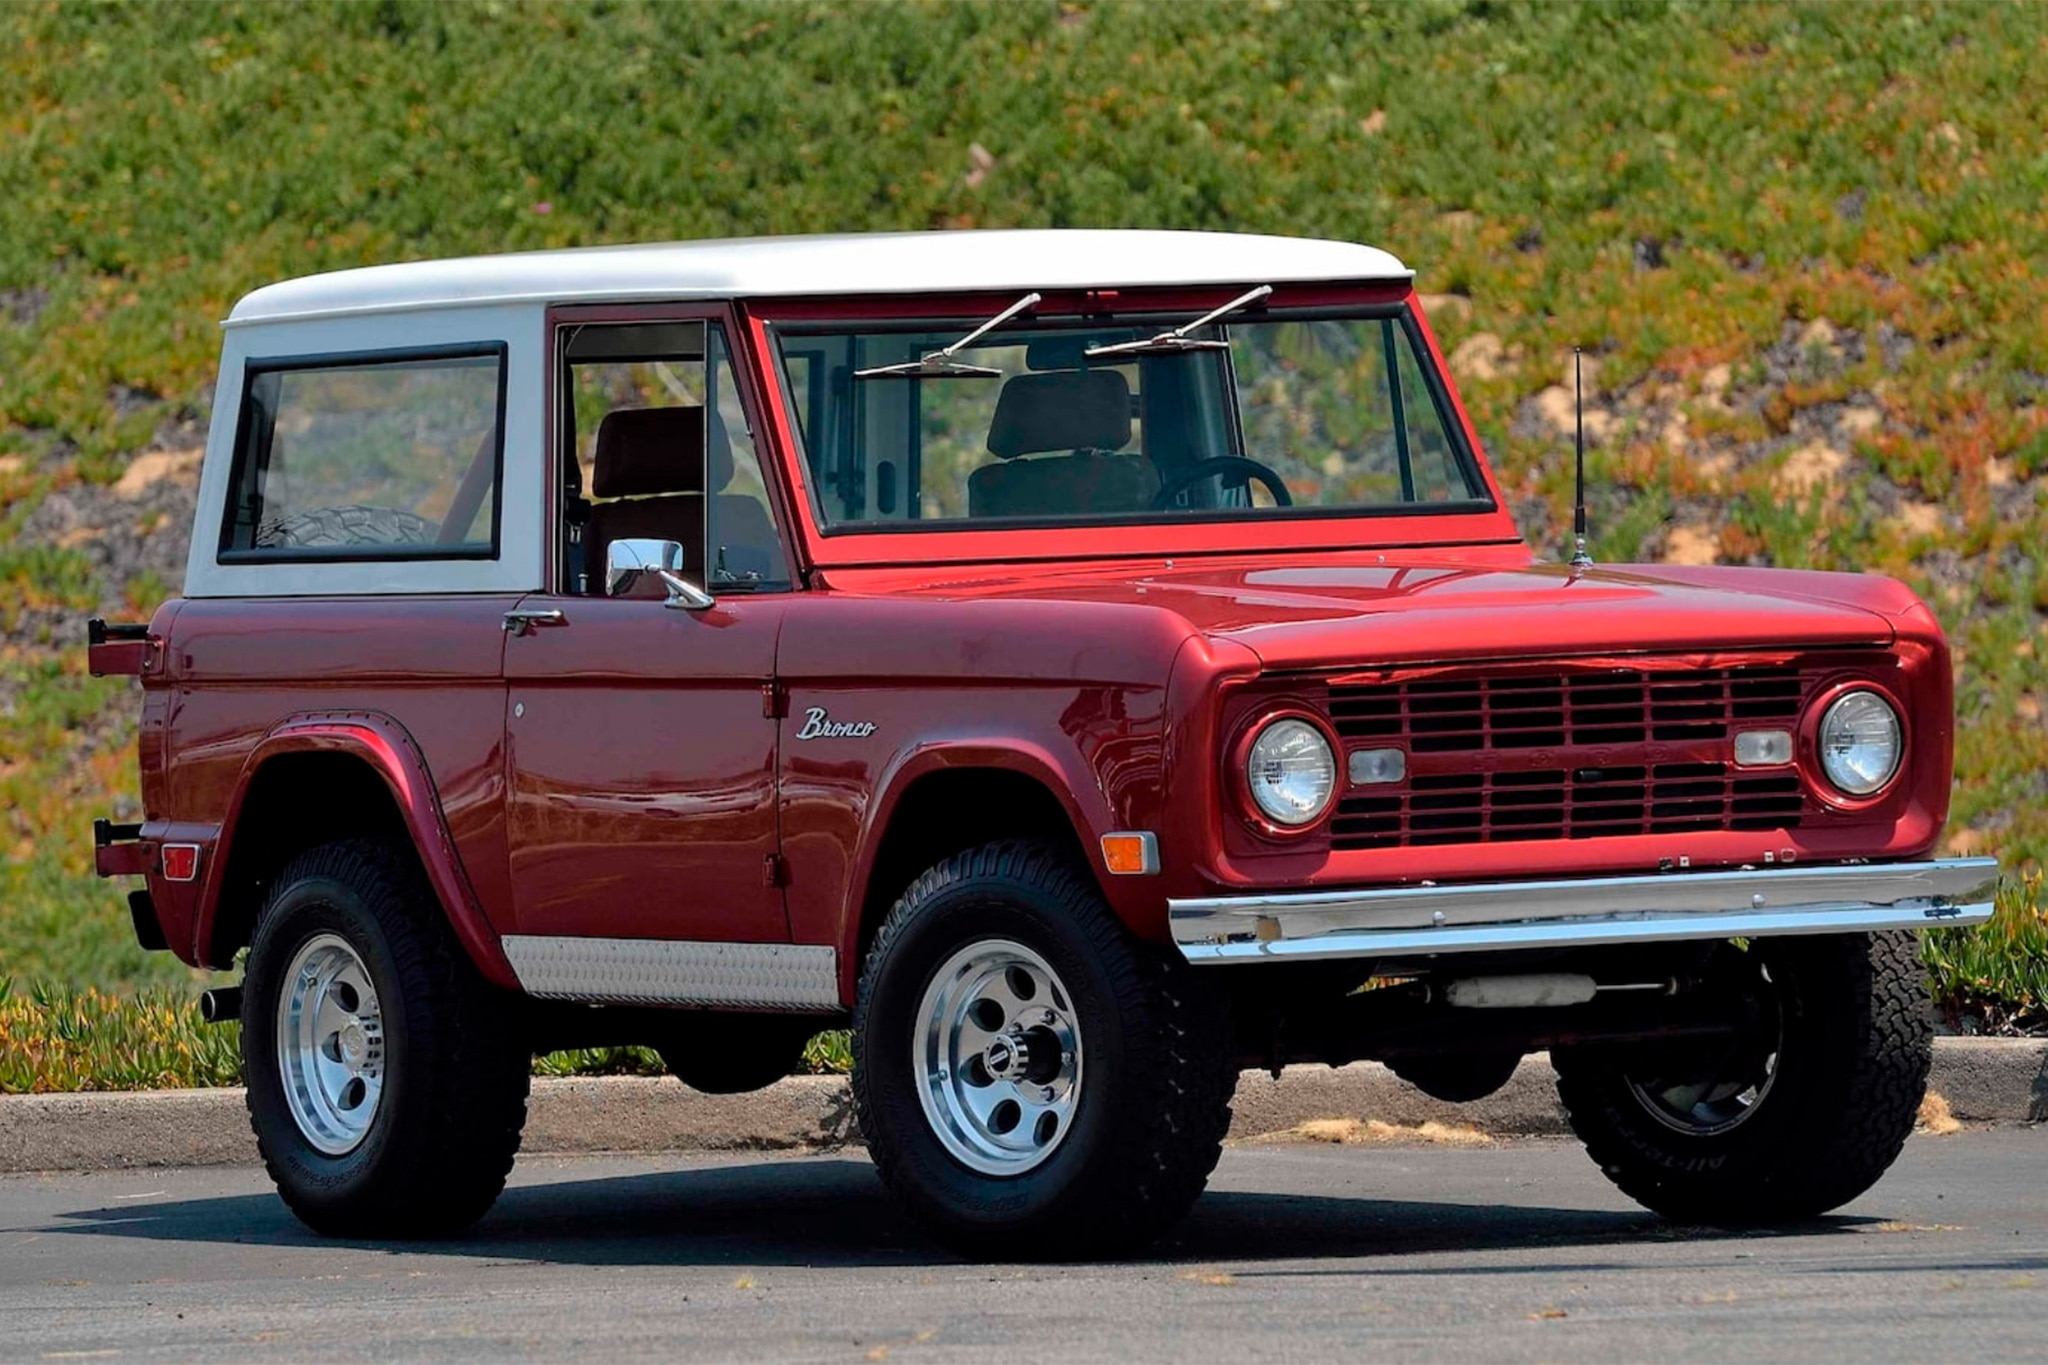 1968 Ford Bronco Restomod Mercum 2?interpolation=lanczos none&fit=around 220 147 collectible classic 1965 1968 ford country squire latest news 1969 Ford Country Squire at webbmarketing.co